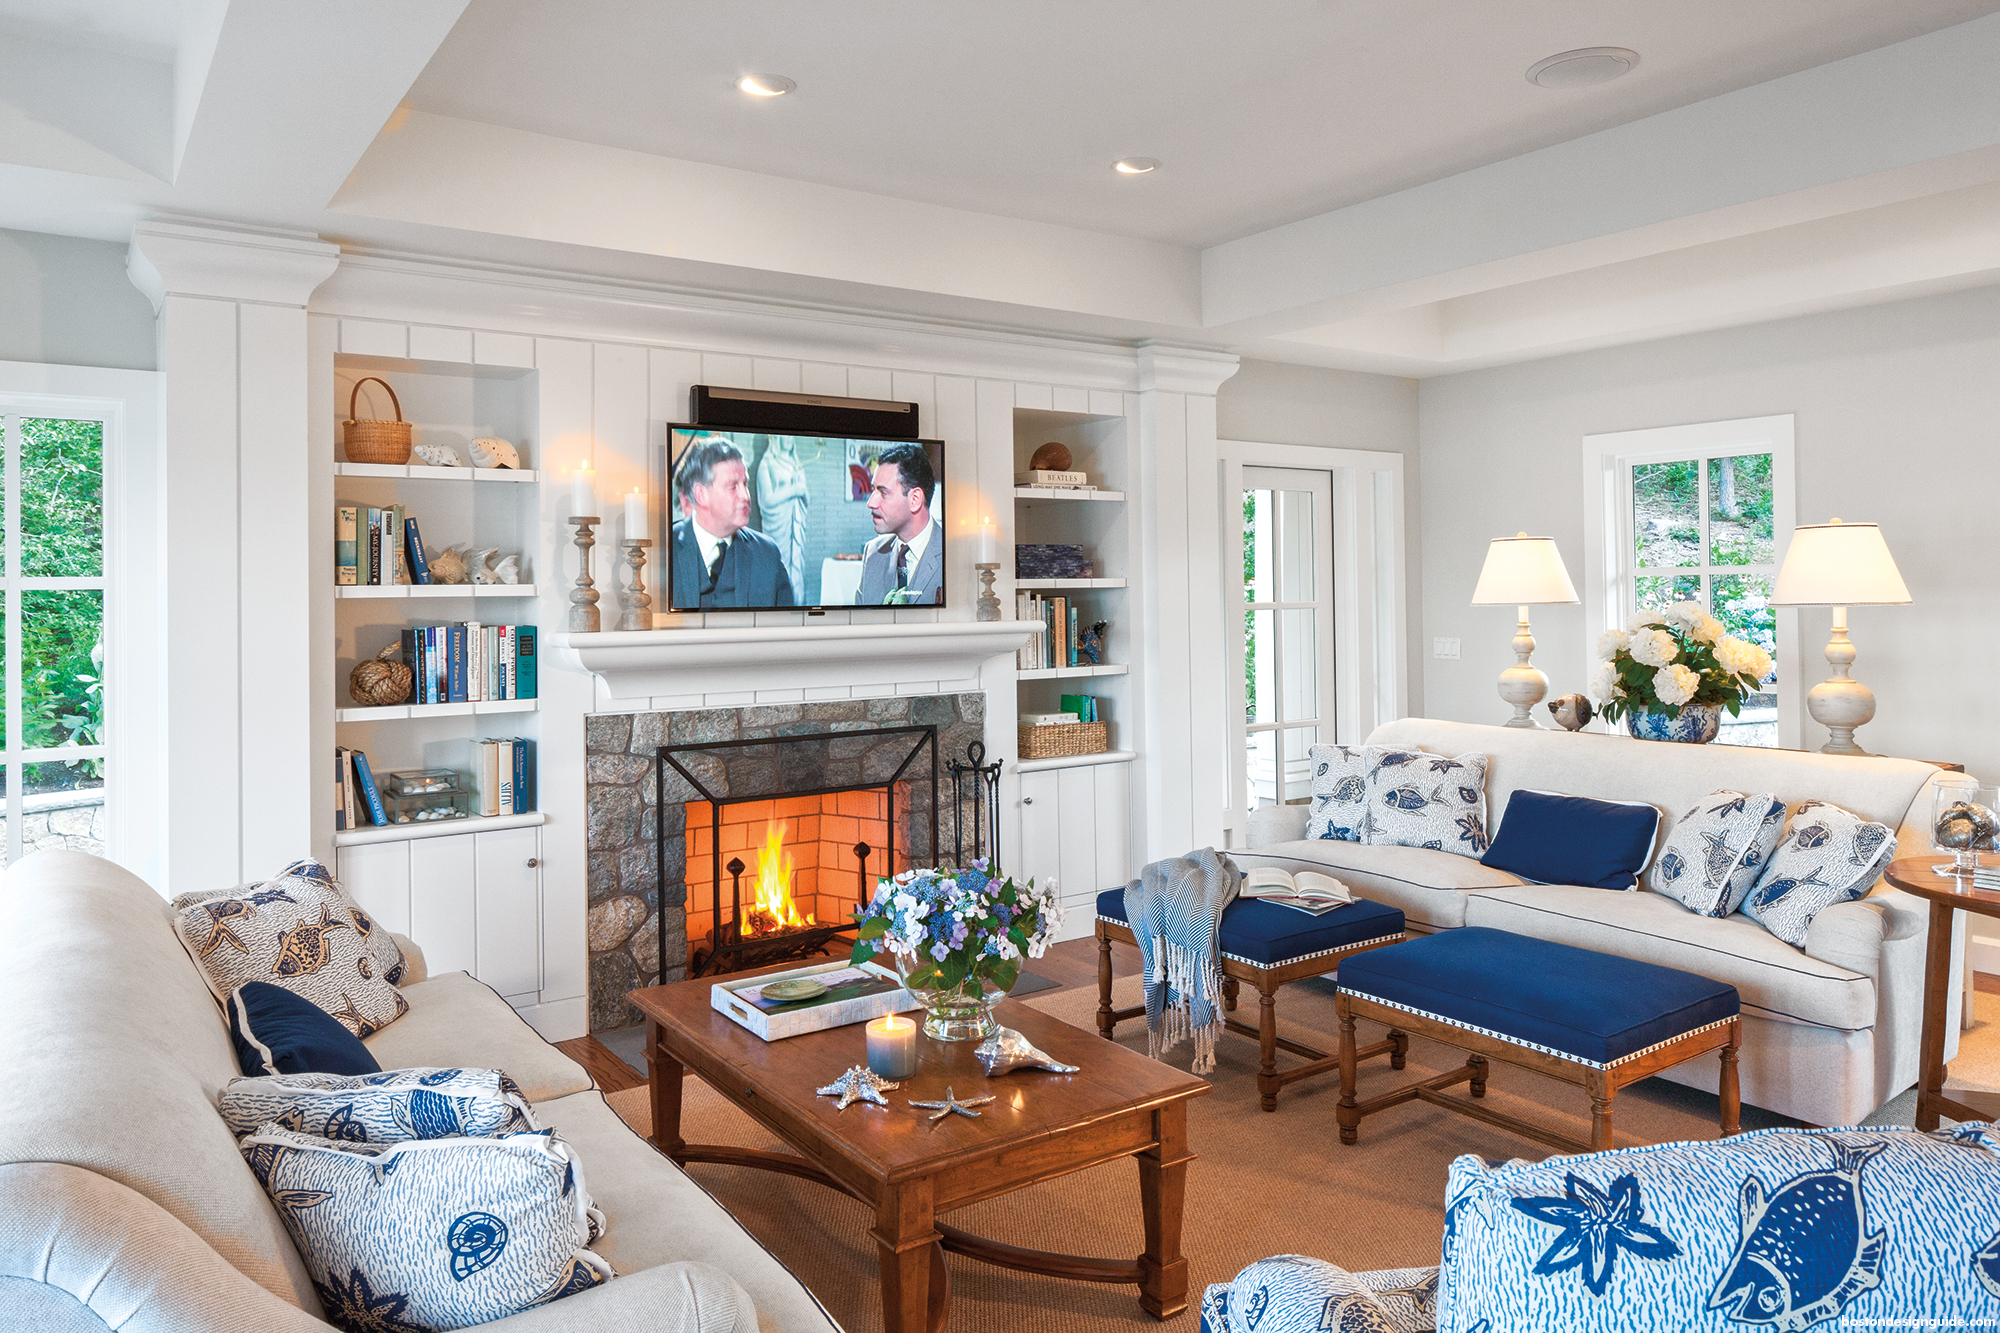 A Cape Cod Shingle Style Home Turns on the Charm | Boston Design Guide